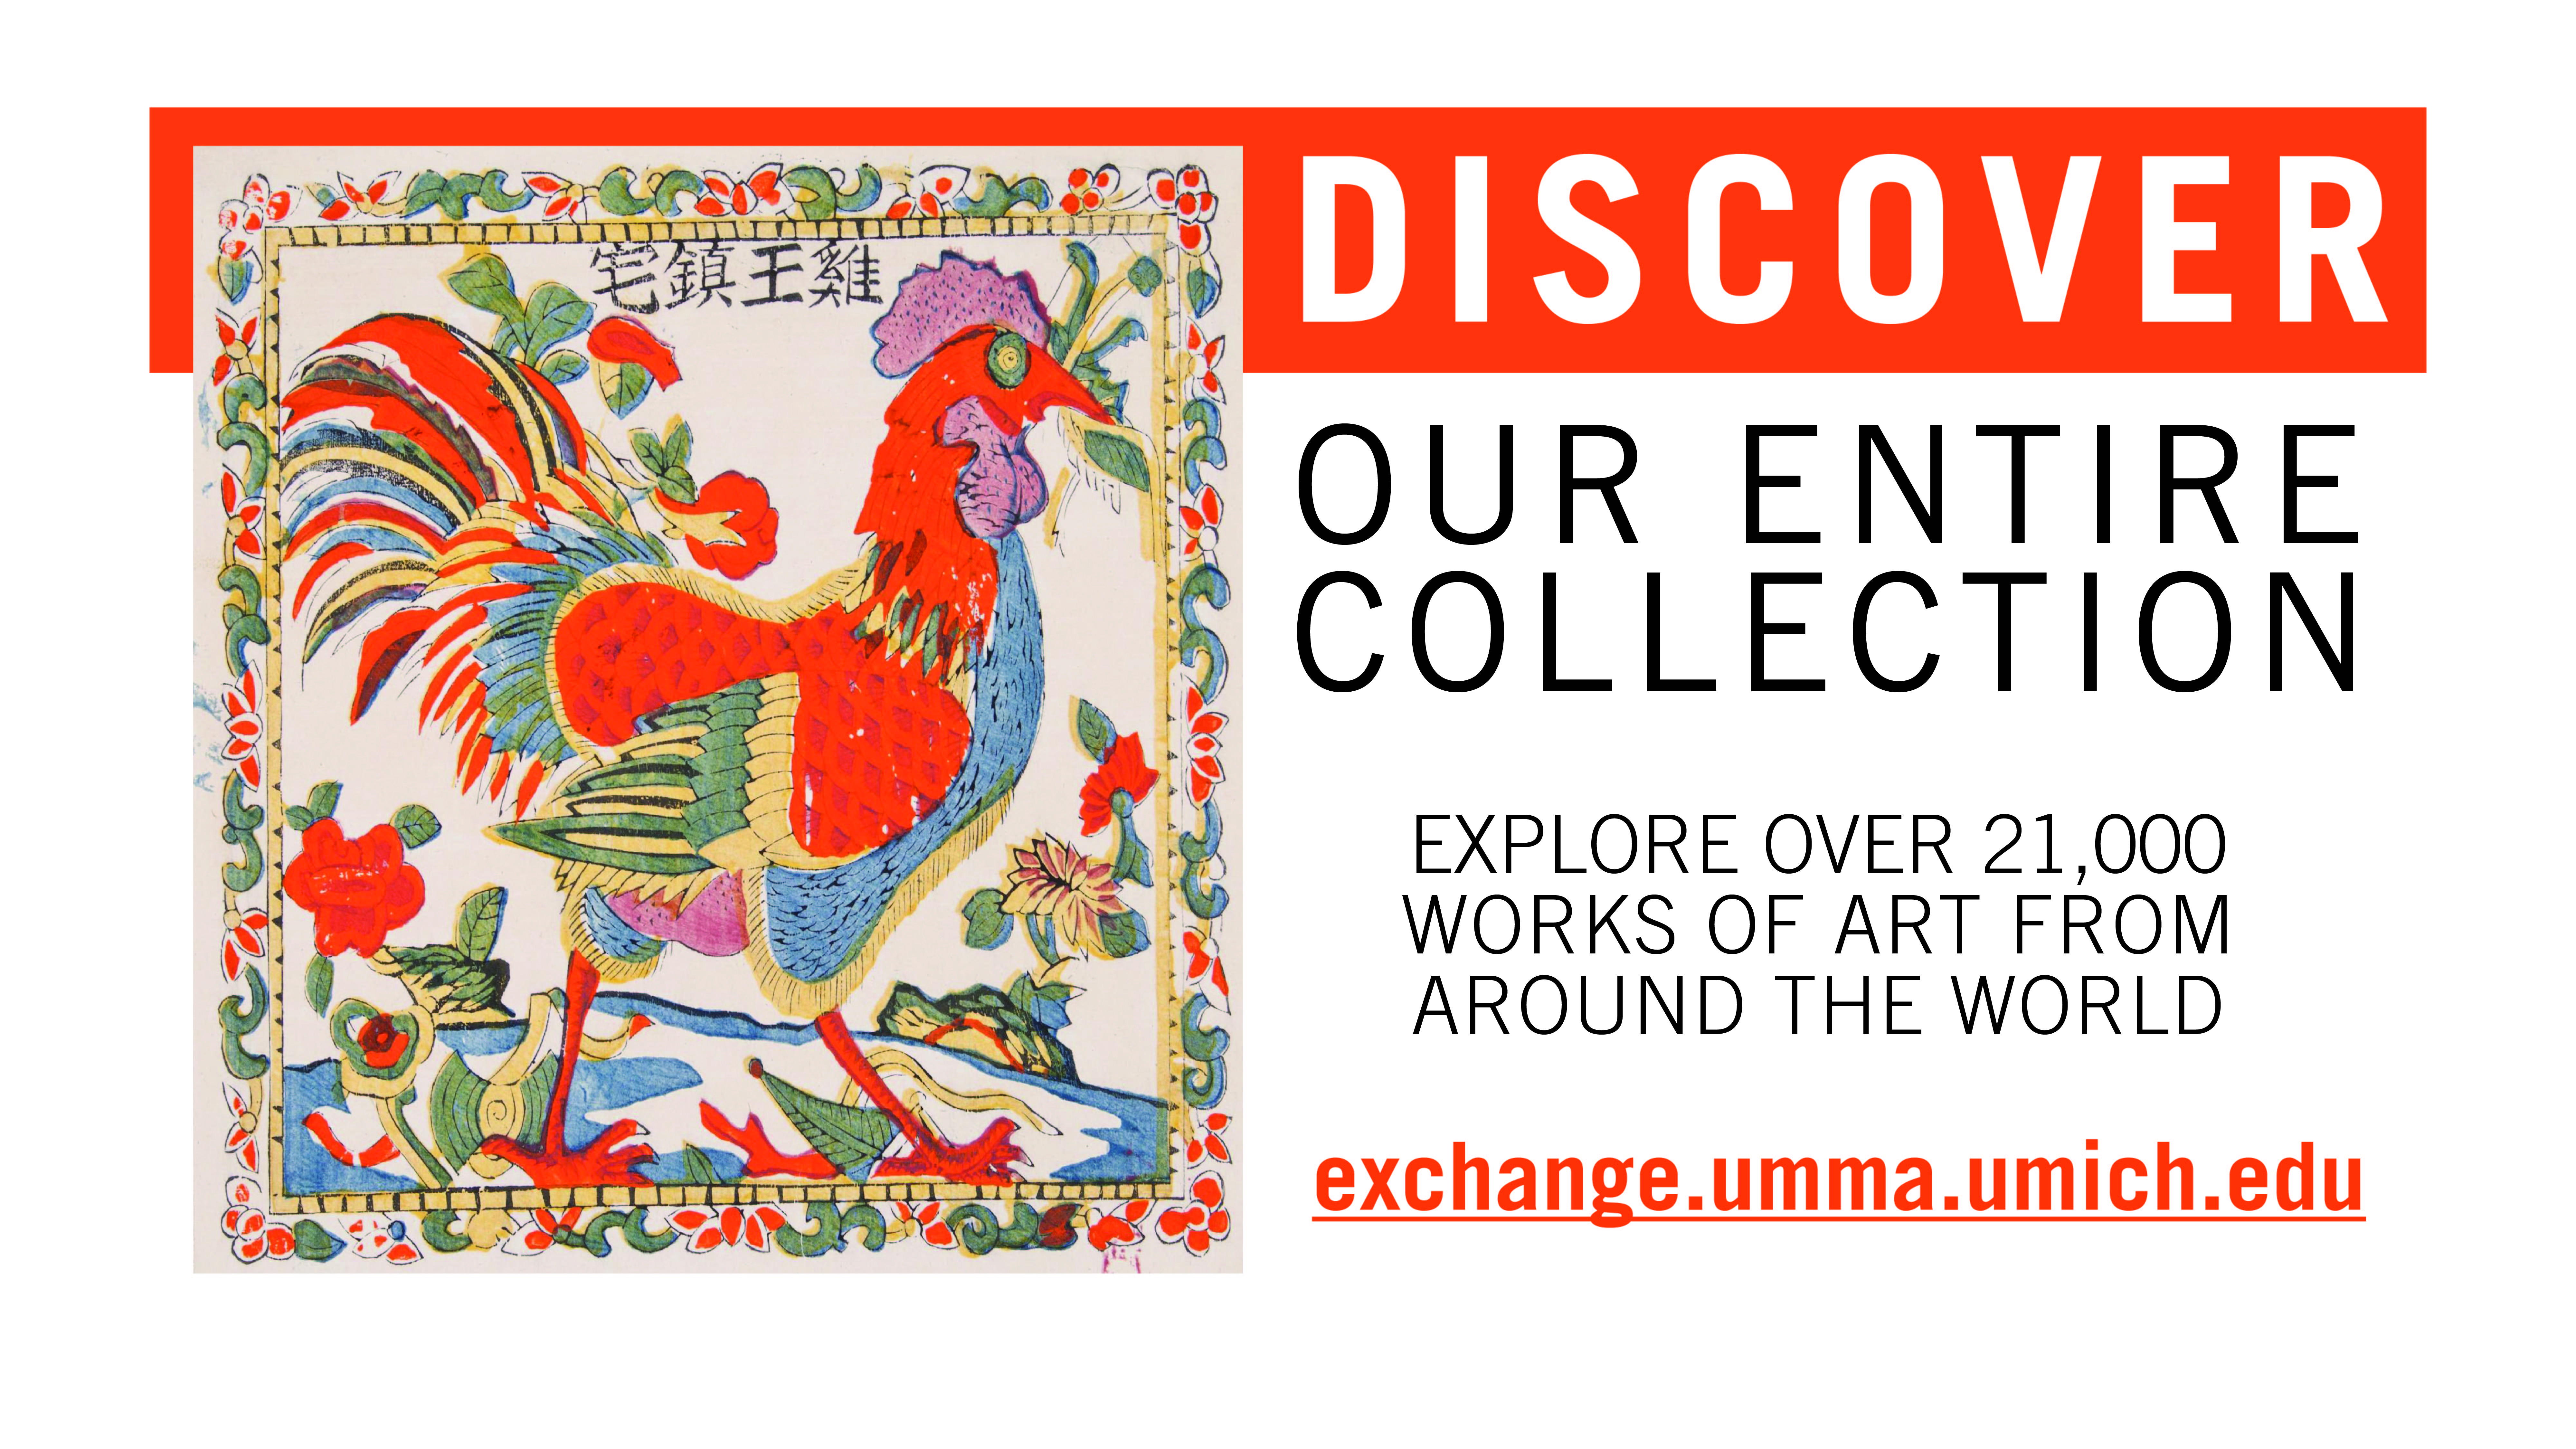 Search the UMMA Exchange